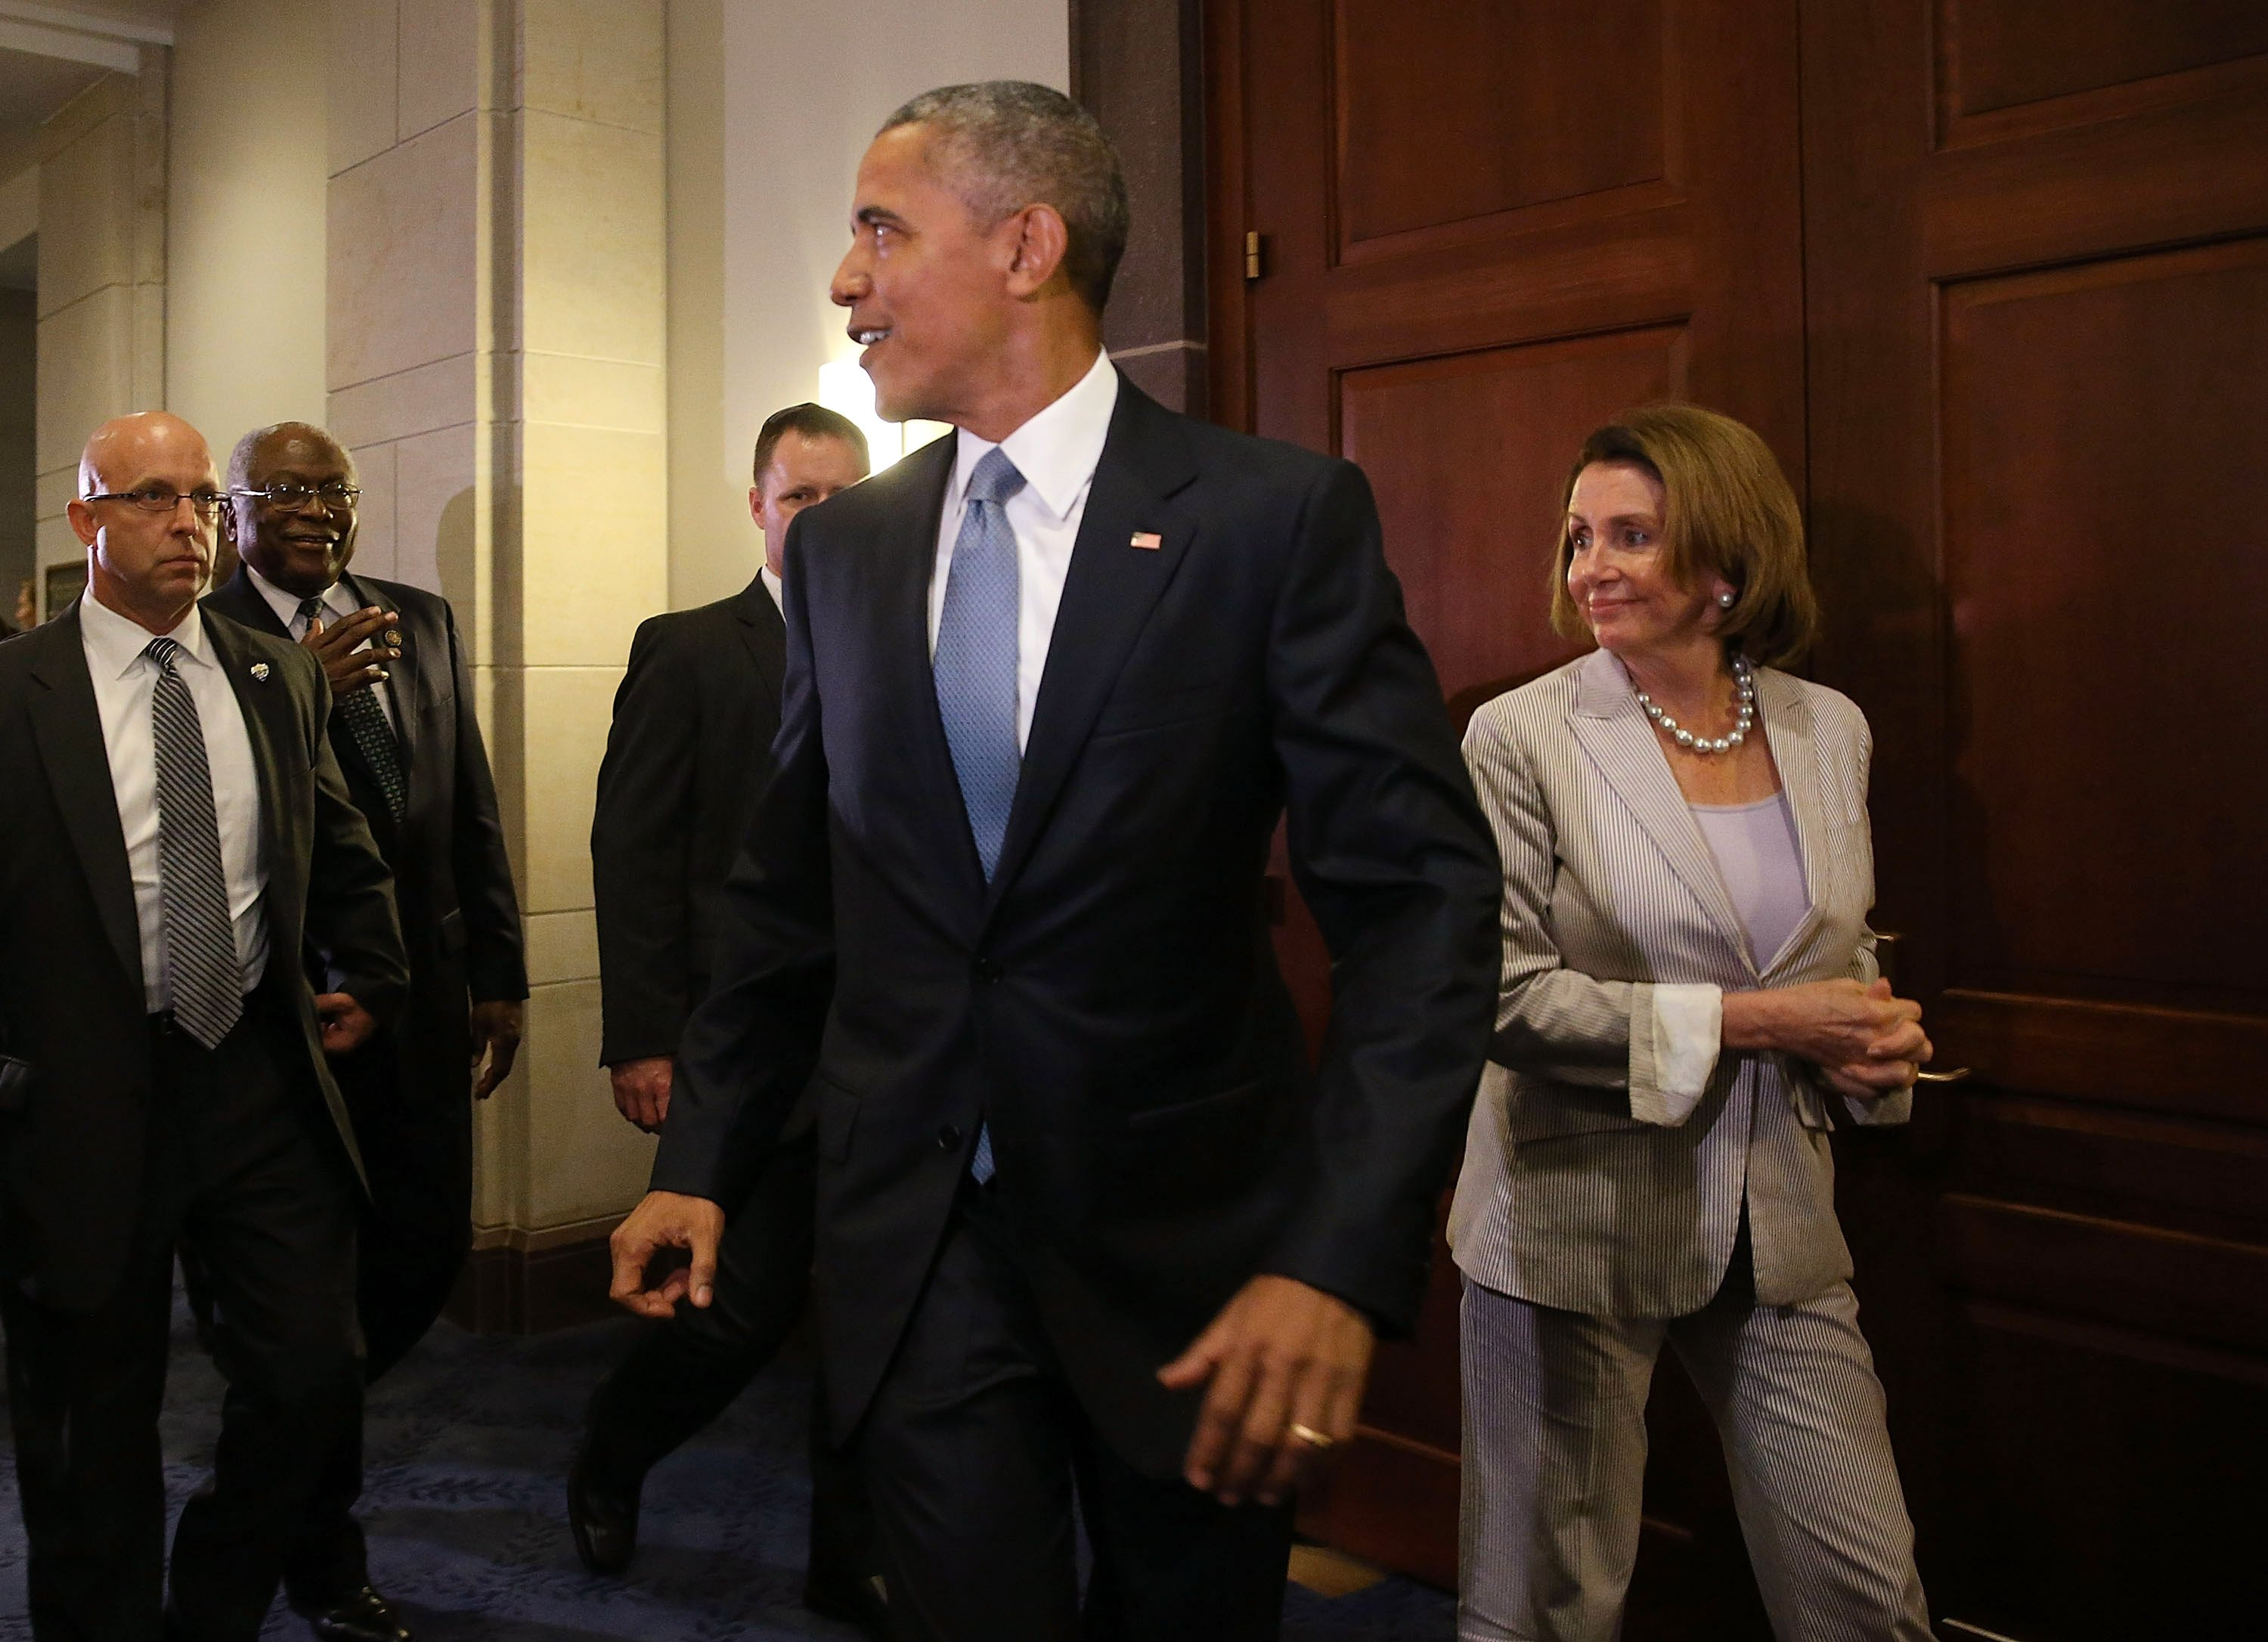 Barack Obama and Nancy Pelosi following a after a meeting with House Democrats at Capitol Hil in 2015 | Photo: Getty Images